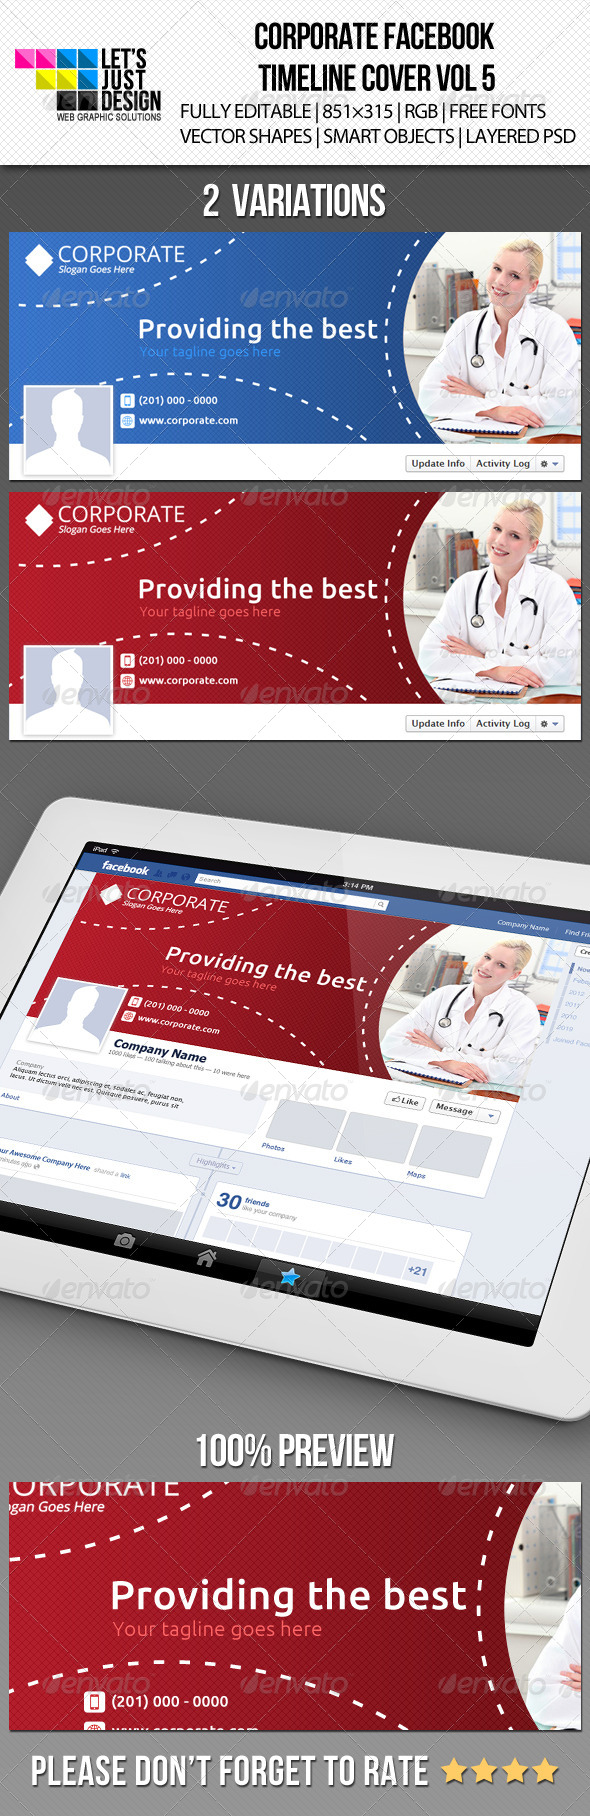 GraphicRiver Creative Corporate Facebook Timeline Cover Vol 4 5243631